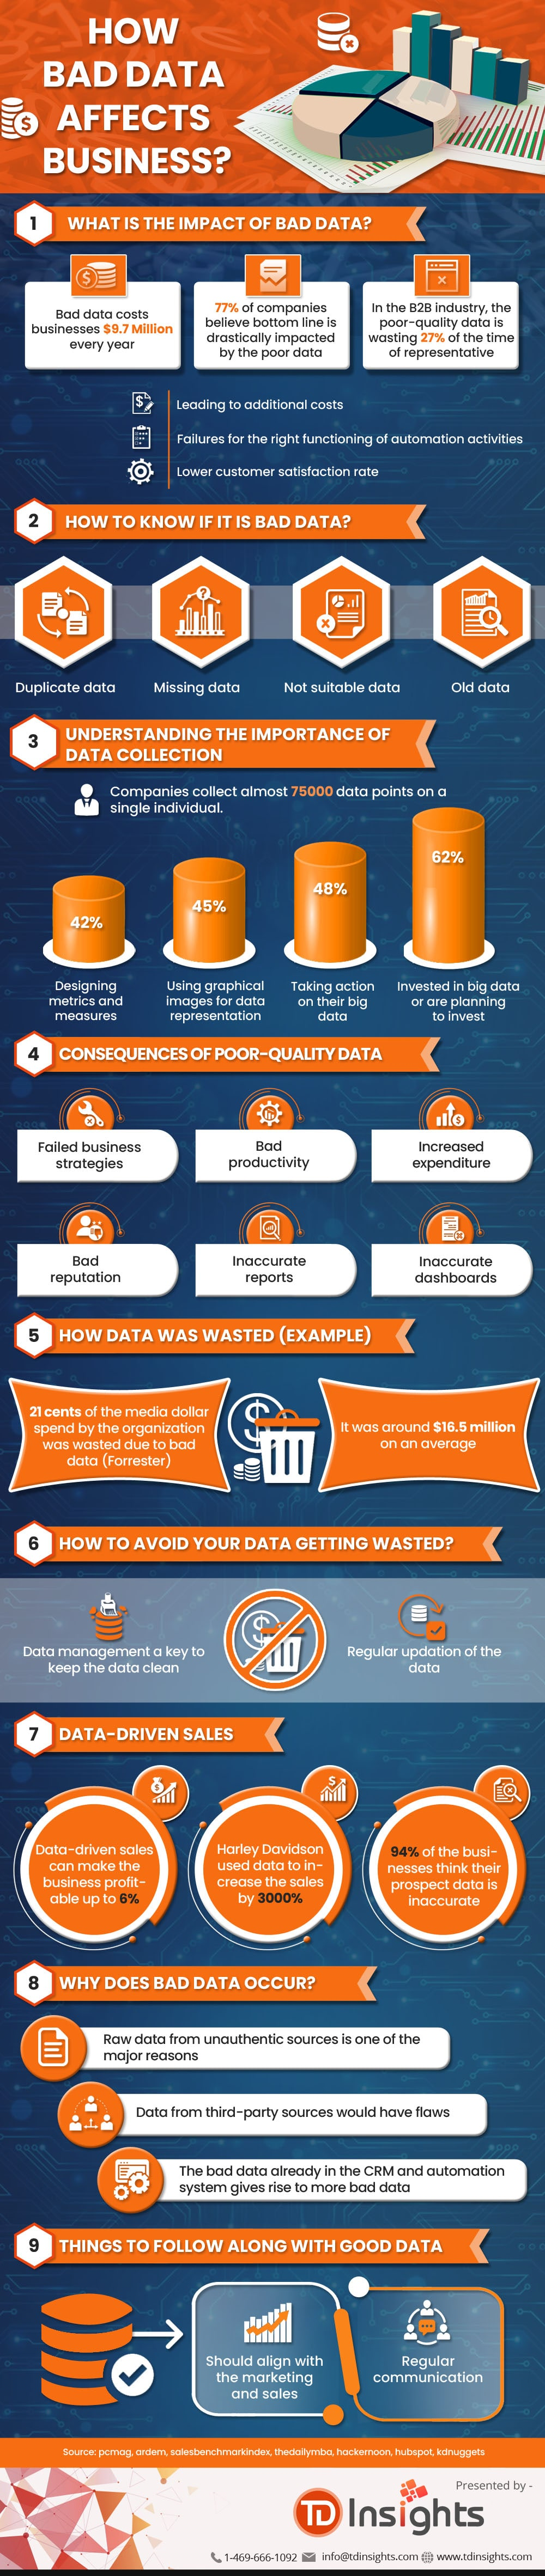 how-bad-data-affects-business